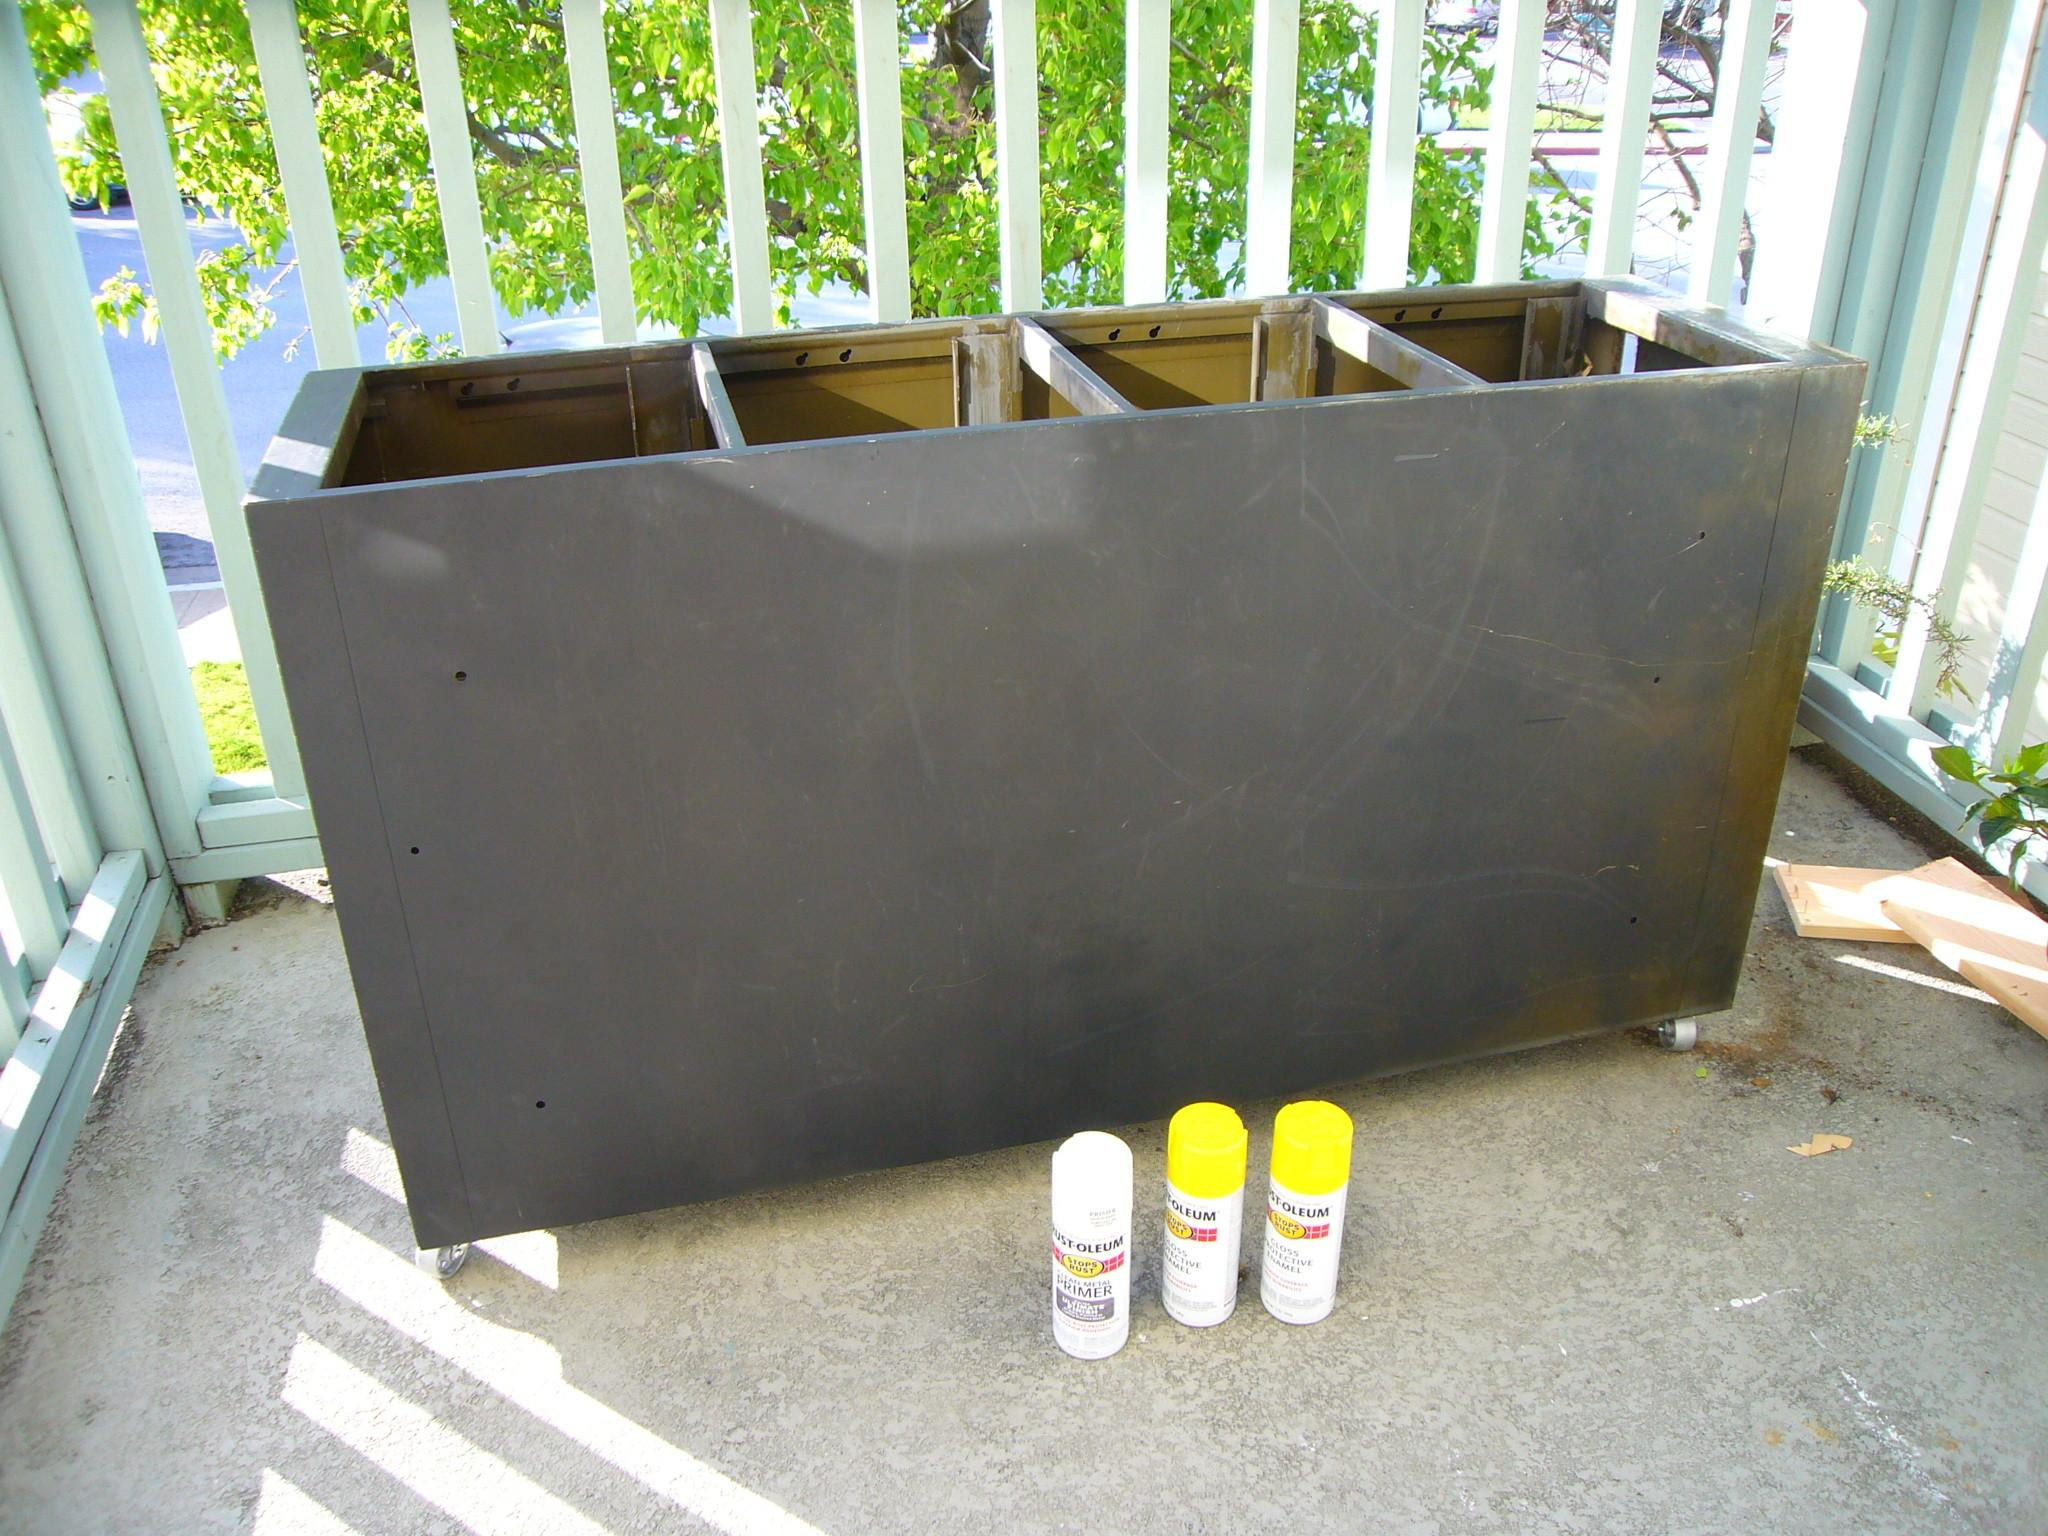 Cabinet Planters Boopy Projects